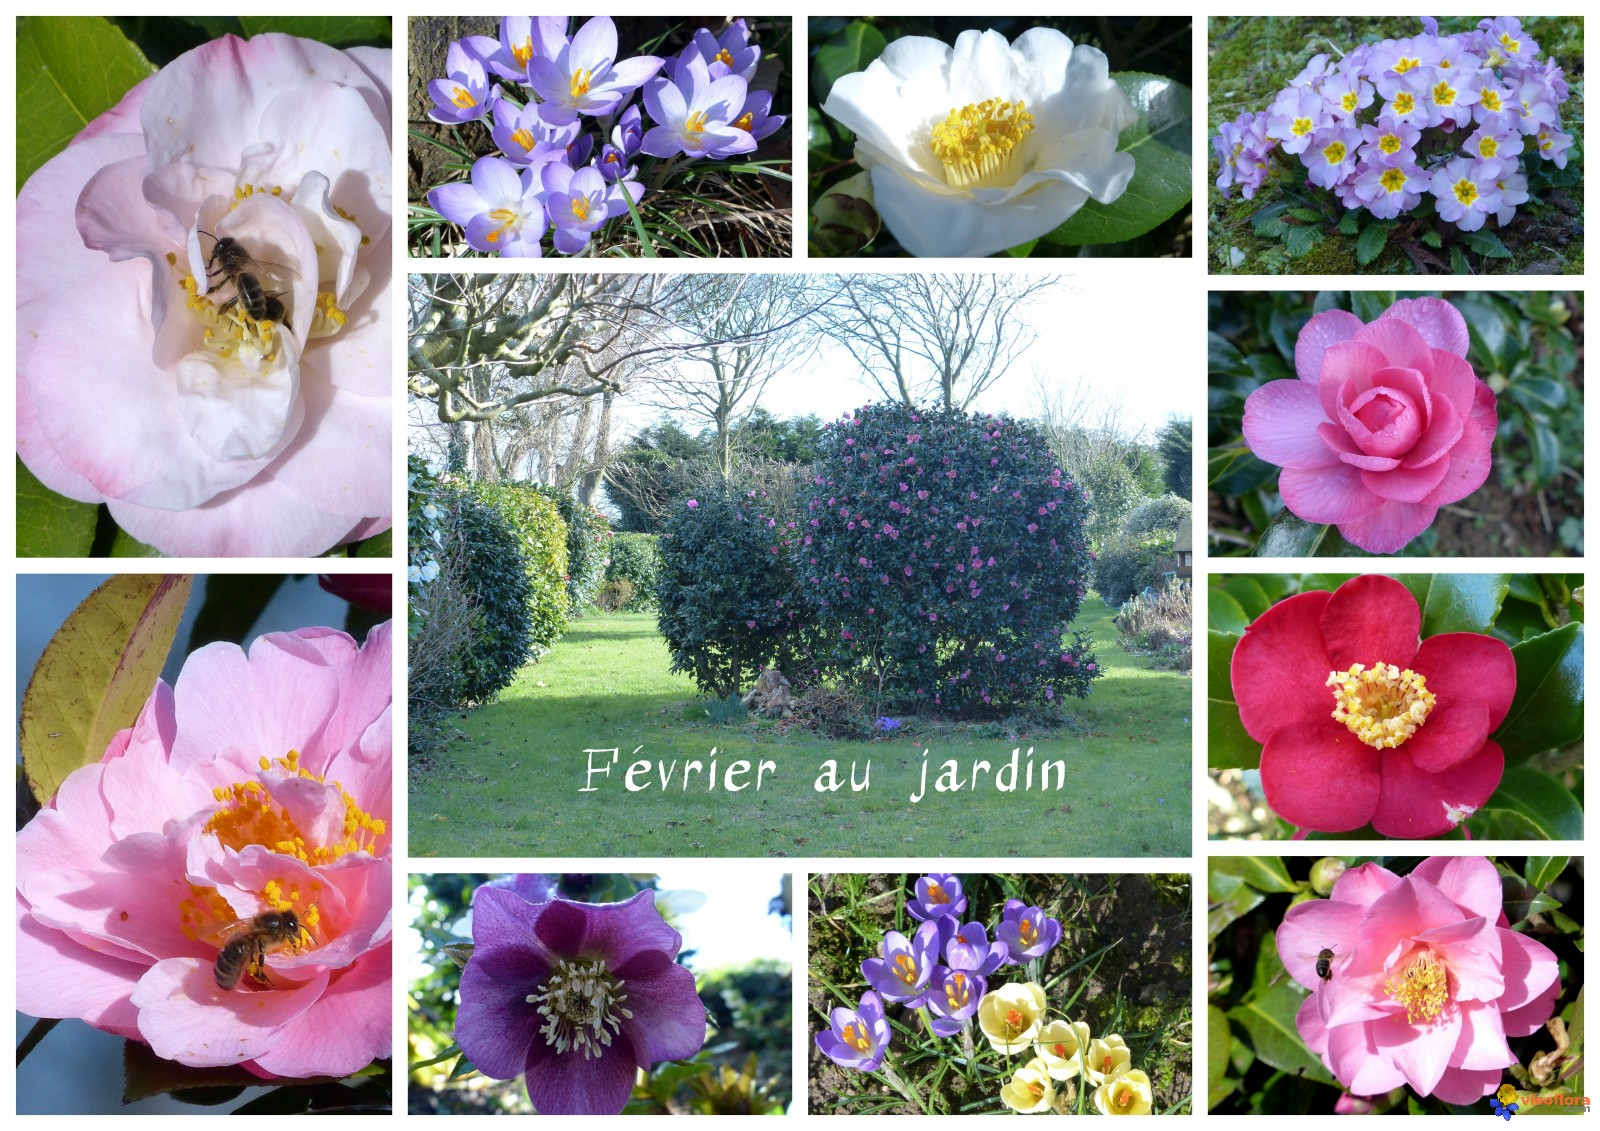 Photo f vrier au jardin for Jardin fevrier